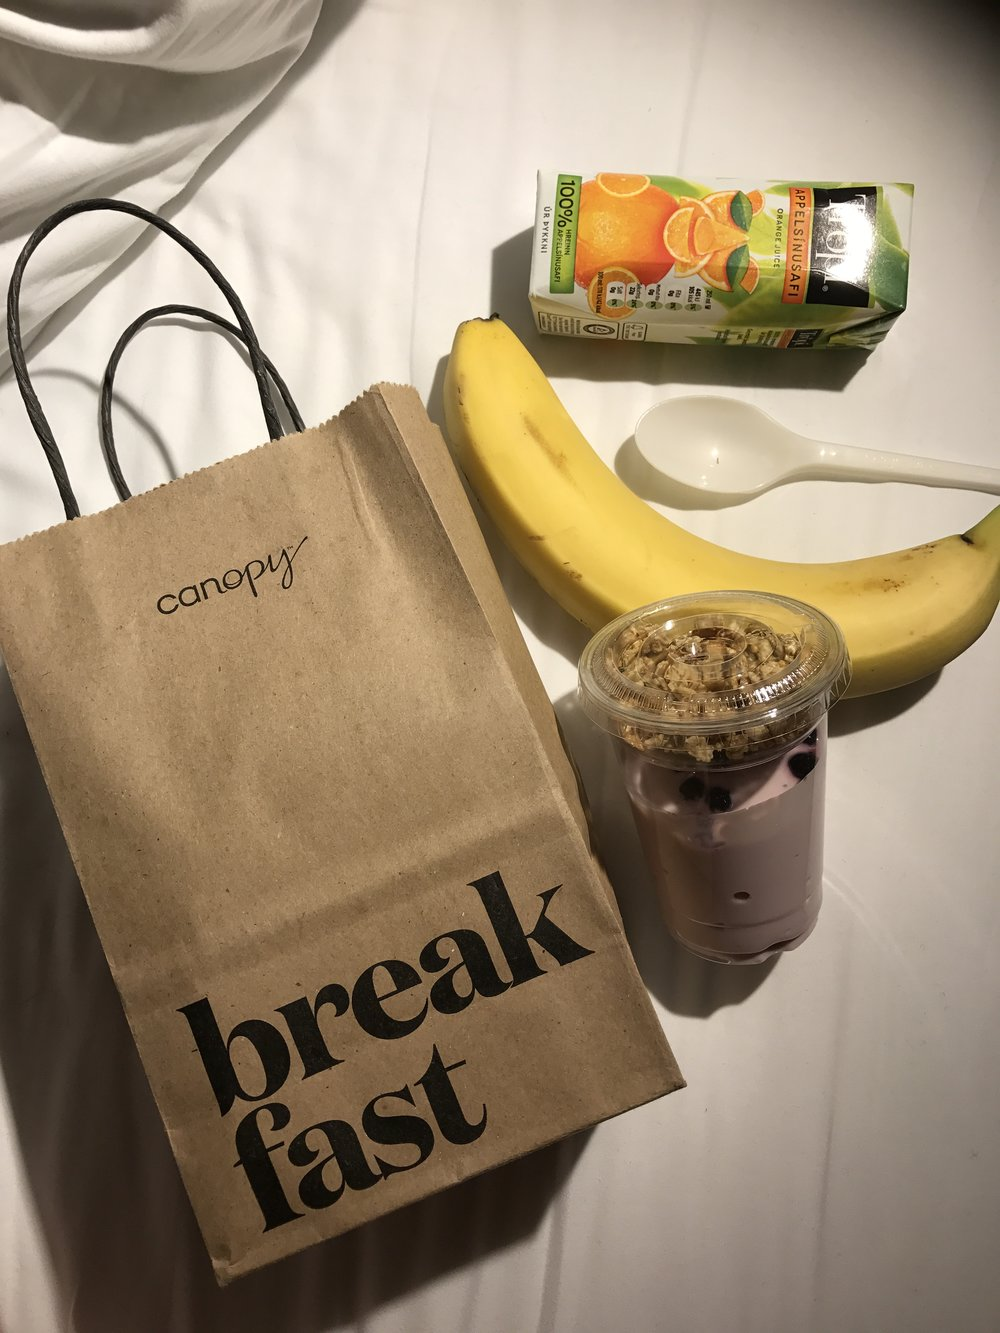 At Canopy, they leave you a great little breakfast bag on a hook by your door each morning. Love it.